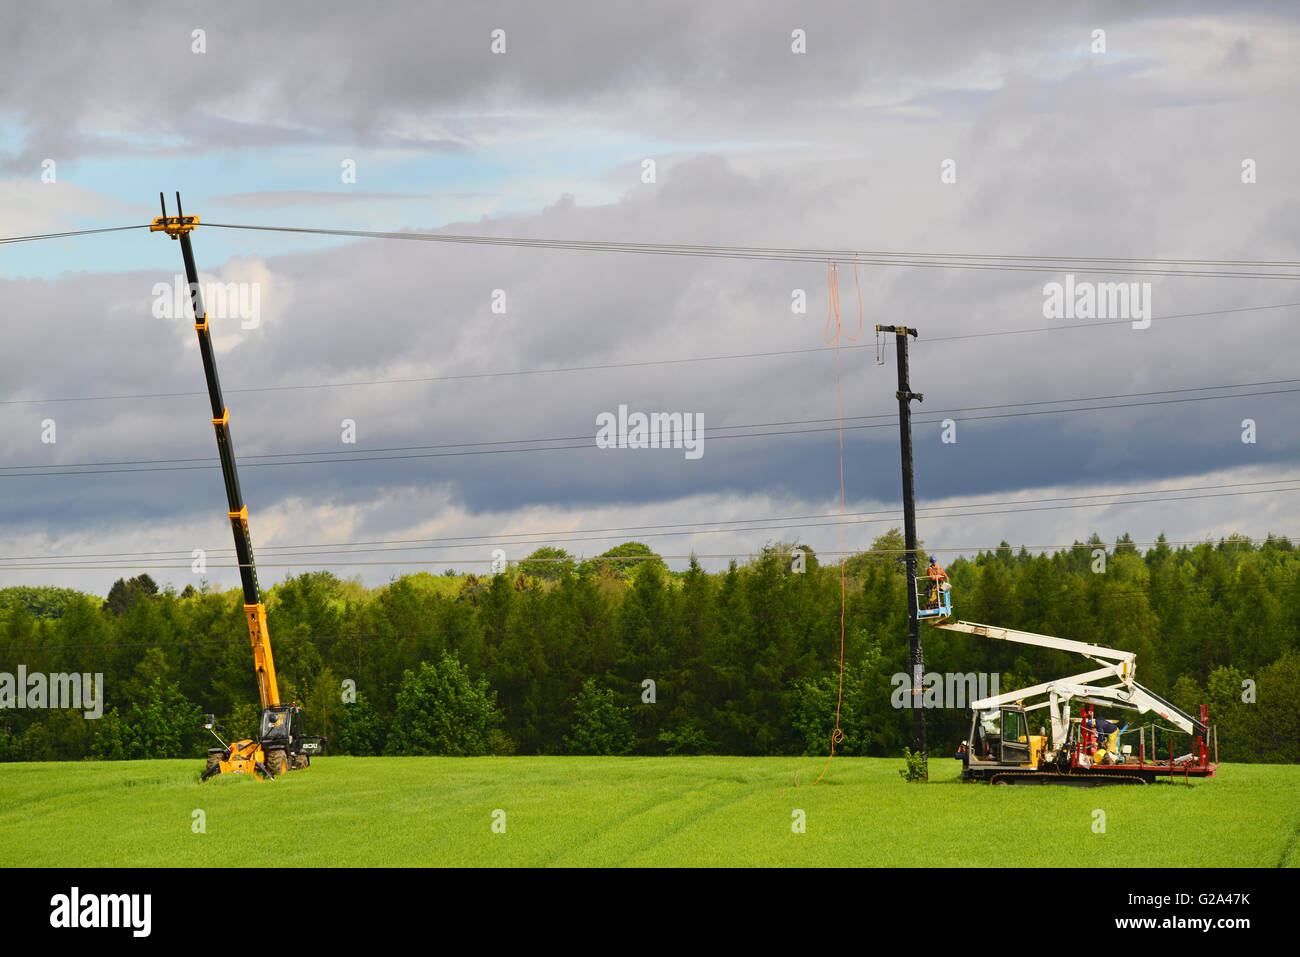 engineers constructing new power line pylons and cable leeds yorkshire united kingdom - Stock Image